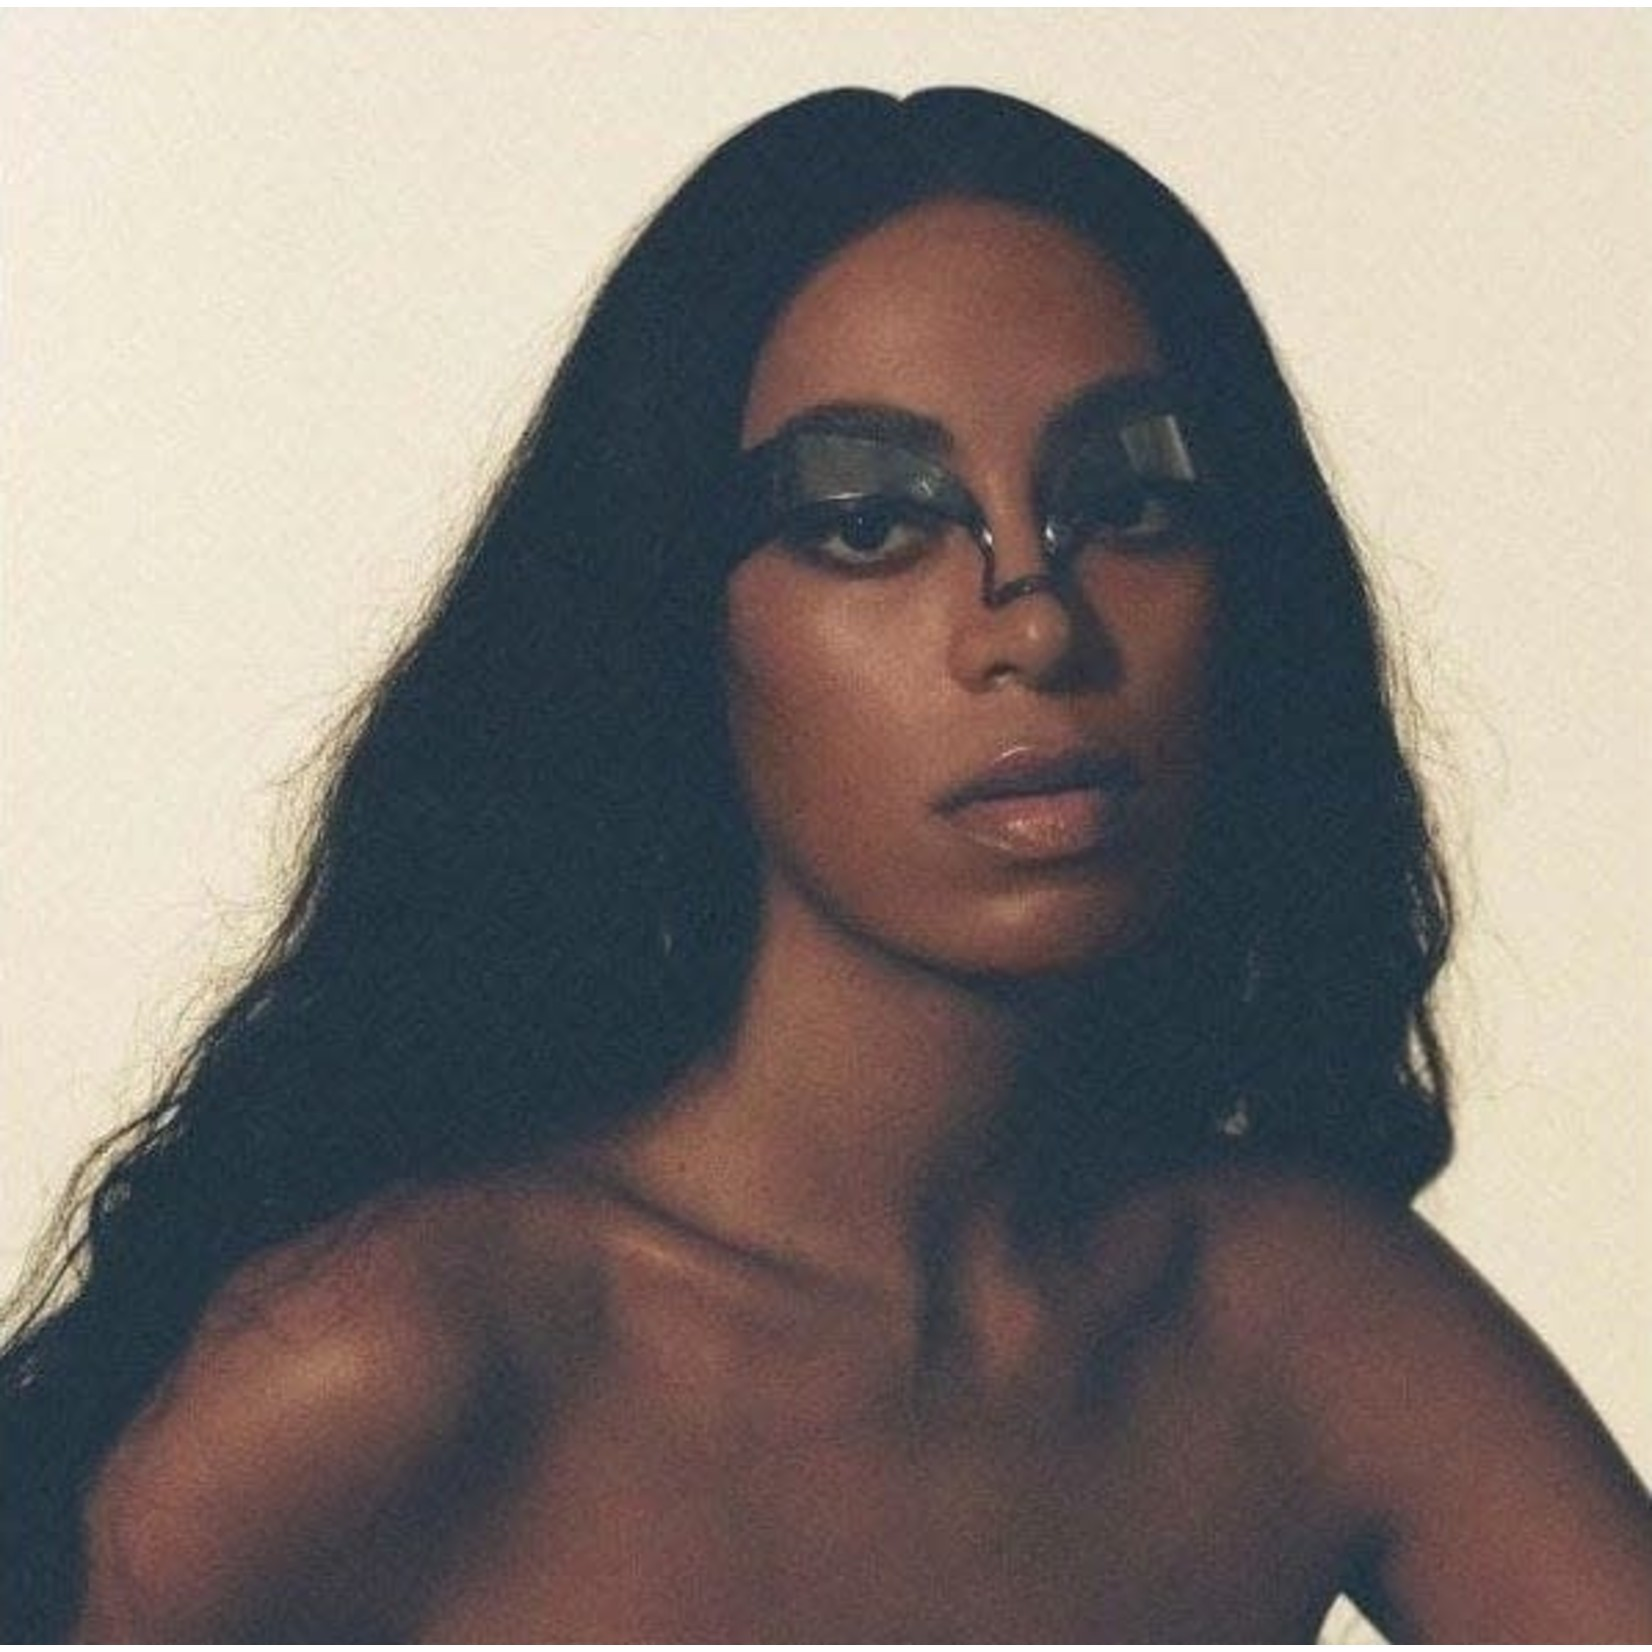 [New] Solange: When I Get Home (clear vinyl)